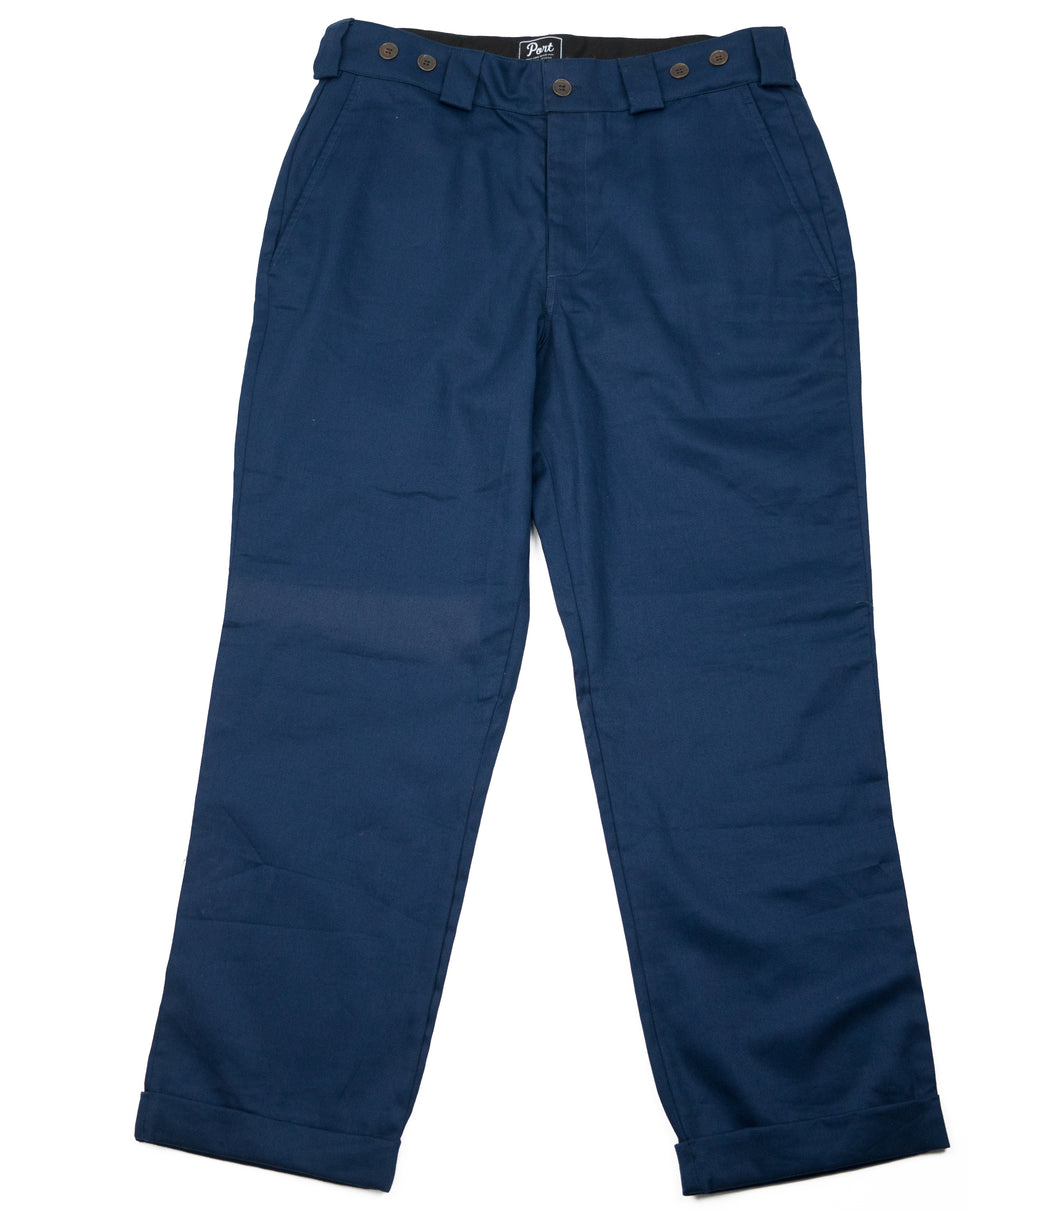 ASTORIA PANT NAVY